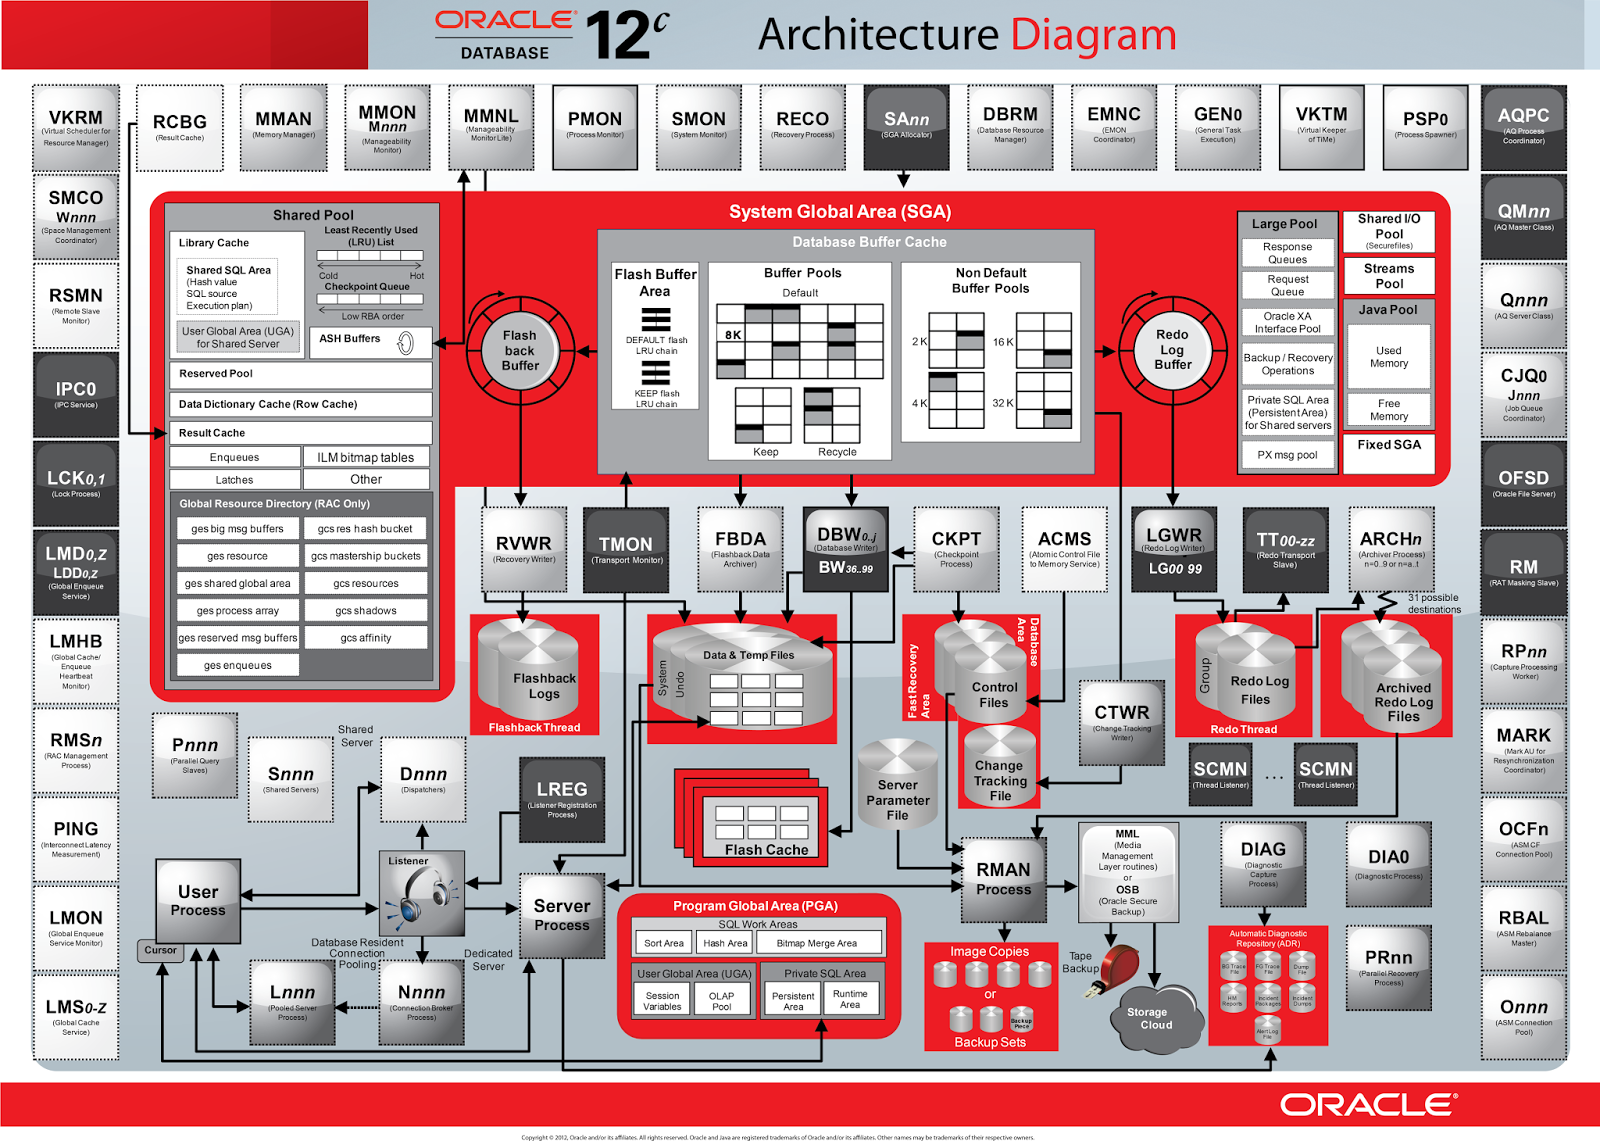 Quest in oracledba architectural diagrams for Architecture oracle